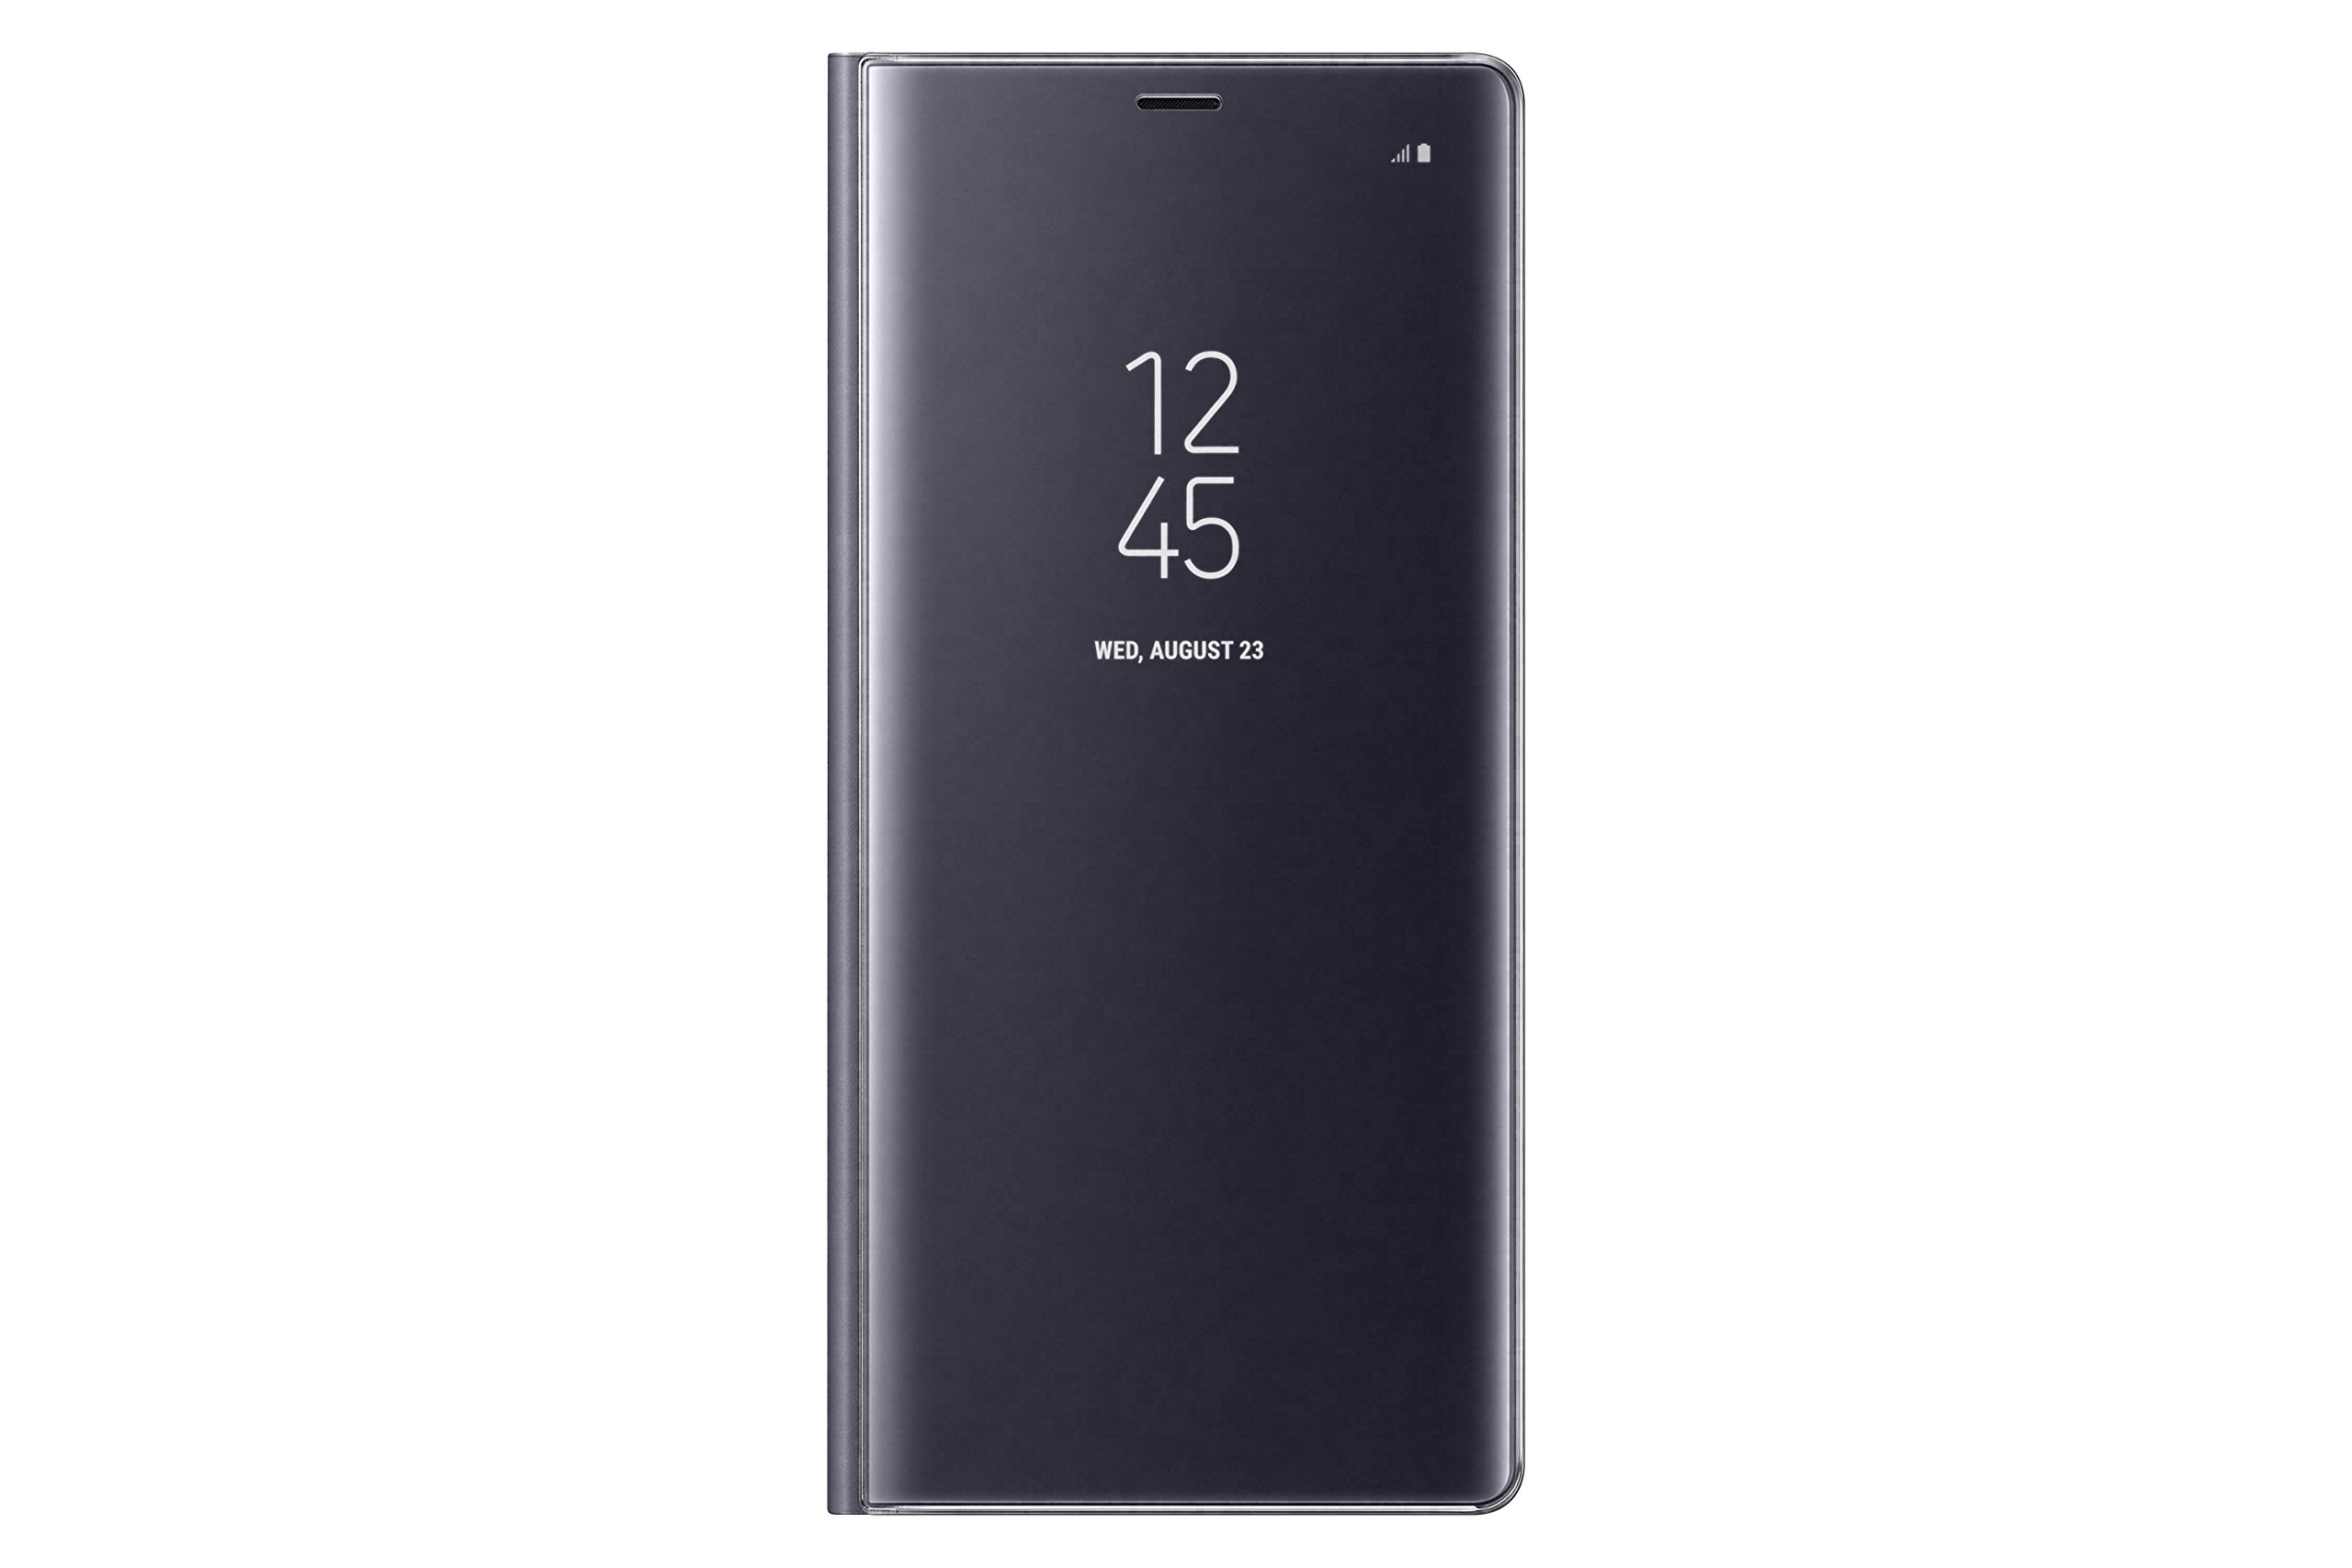 Samsung EF-ZN950CVEGUS Galaxy Note8 S-View Flip Cover with Kickstand, Orchid Gray